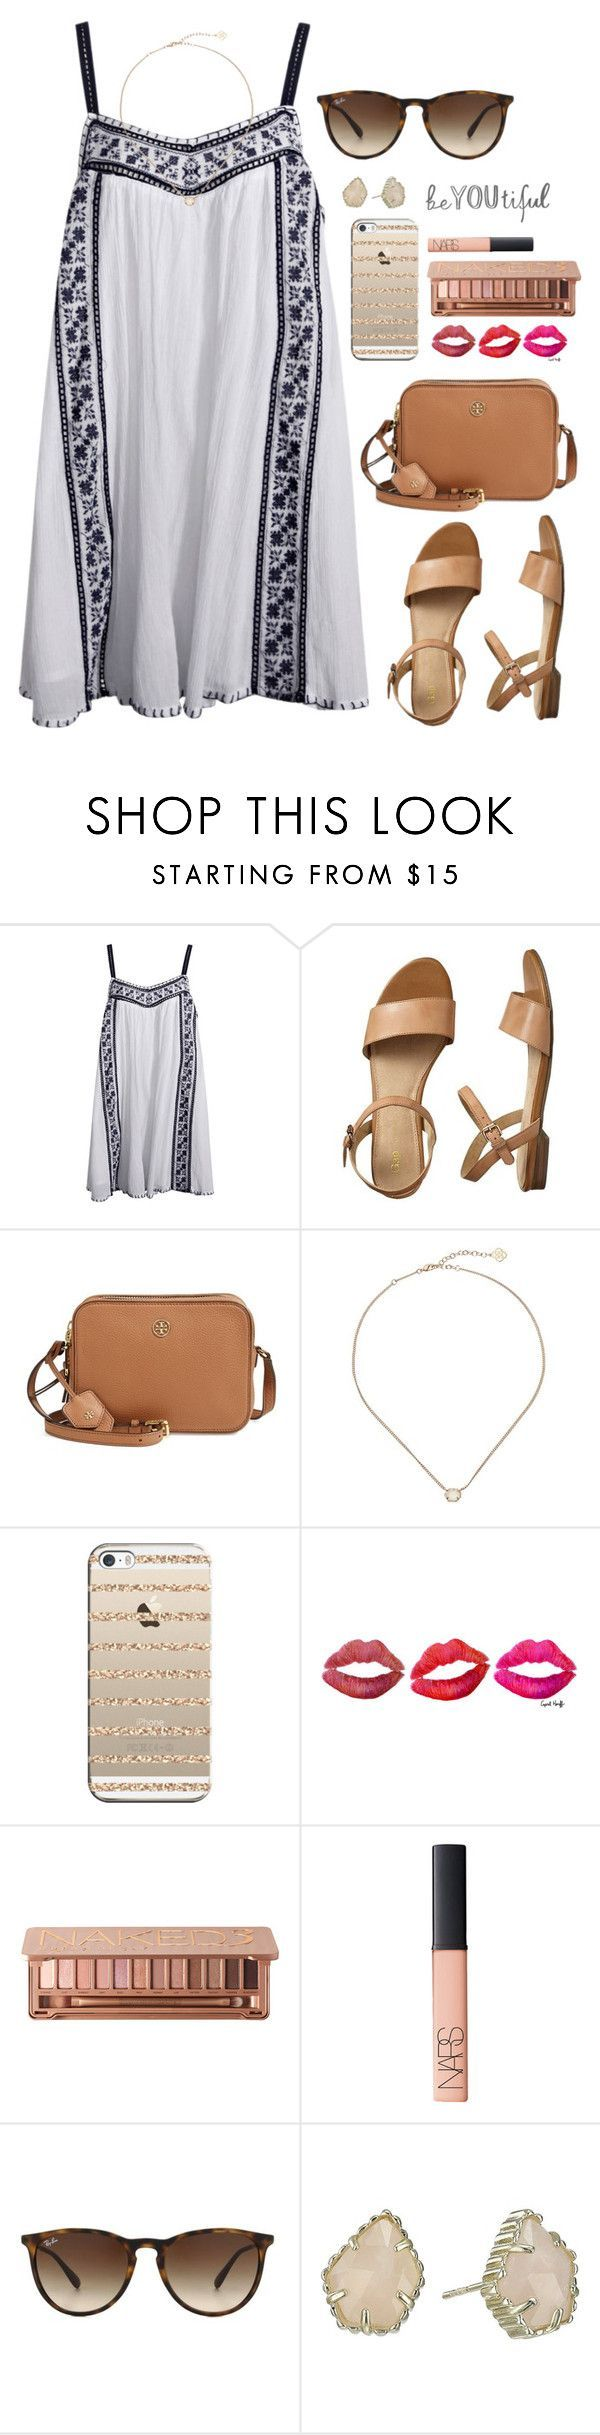 UNC is in the elite 8ยก!ยก! by lillianjester โค liked on Polyvore featuring Gap, Tory Burch, Kendra Scott, Casetify, Urban Decay, NARS Cosmetics and Ray-Ban